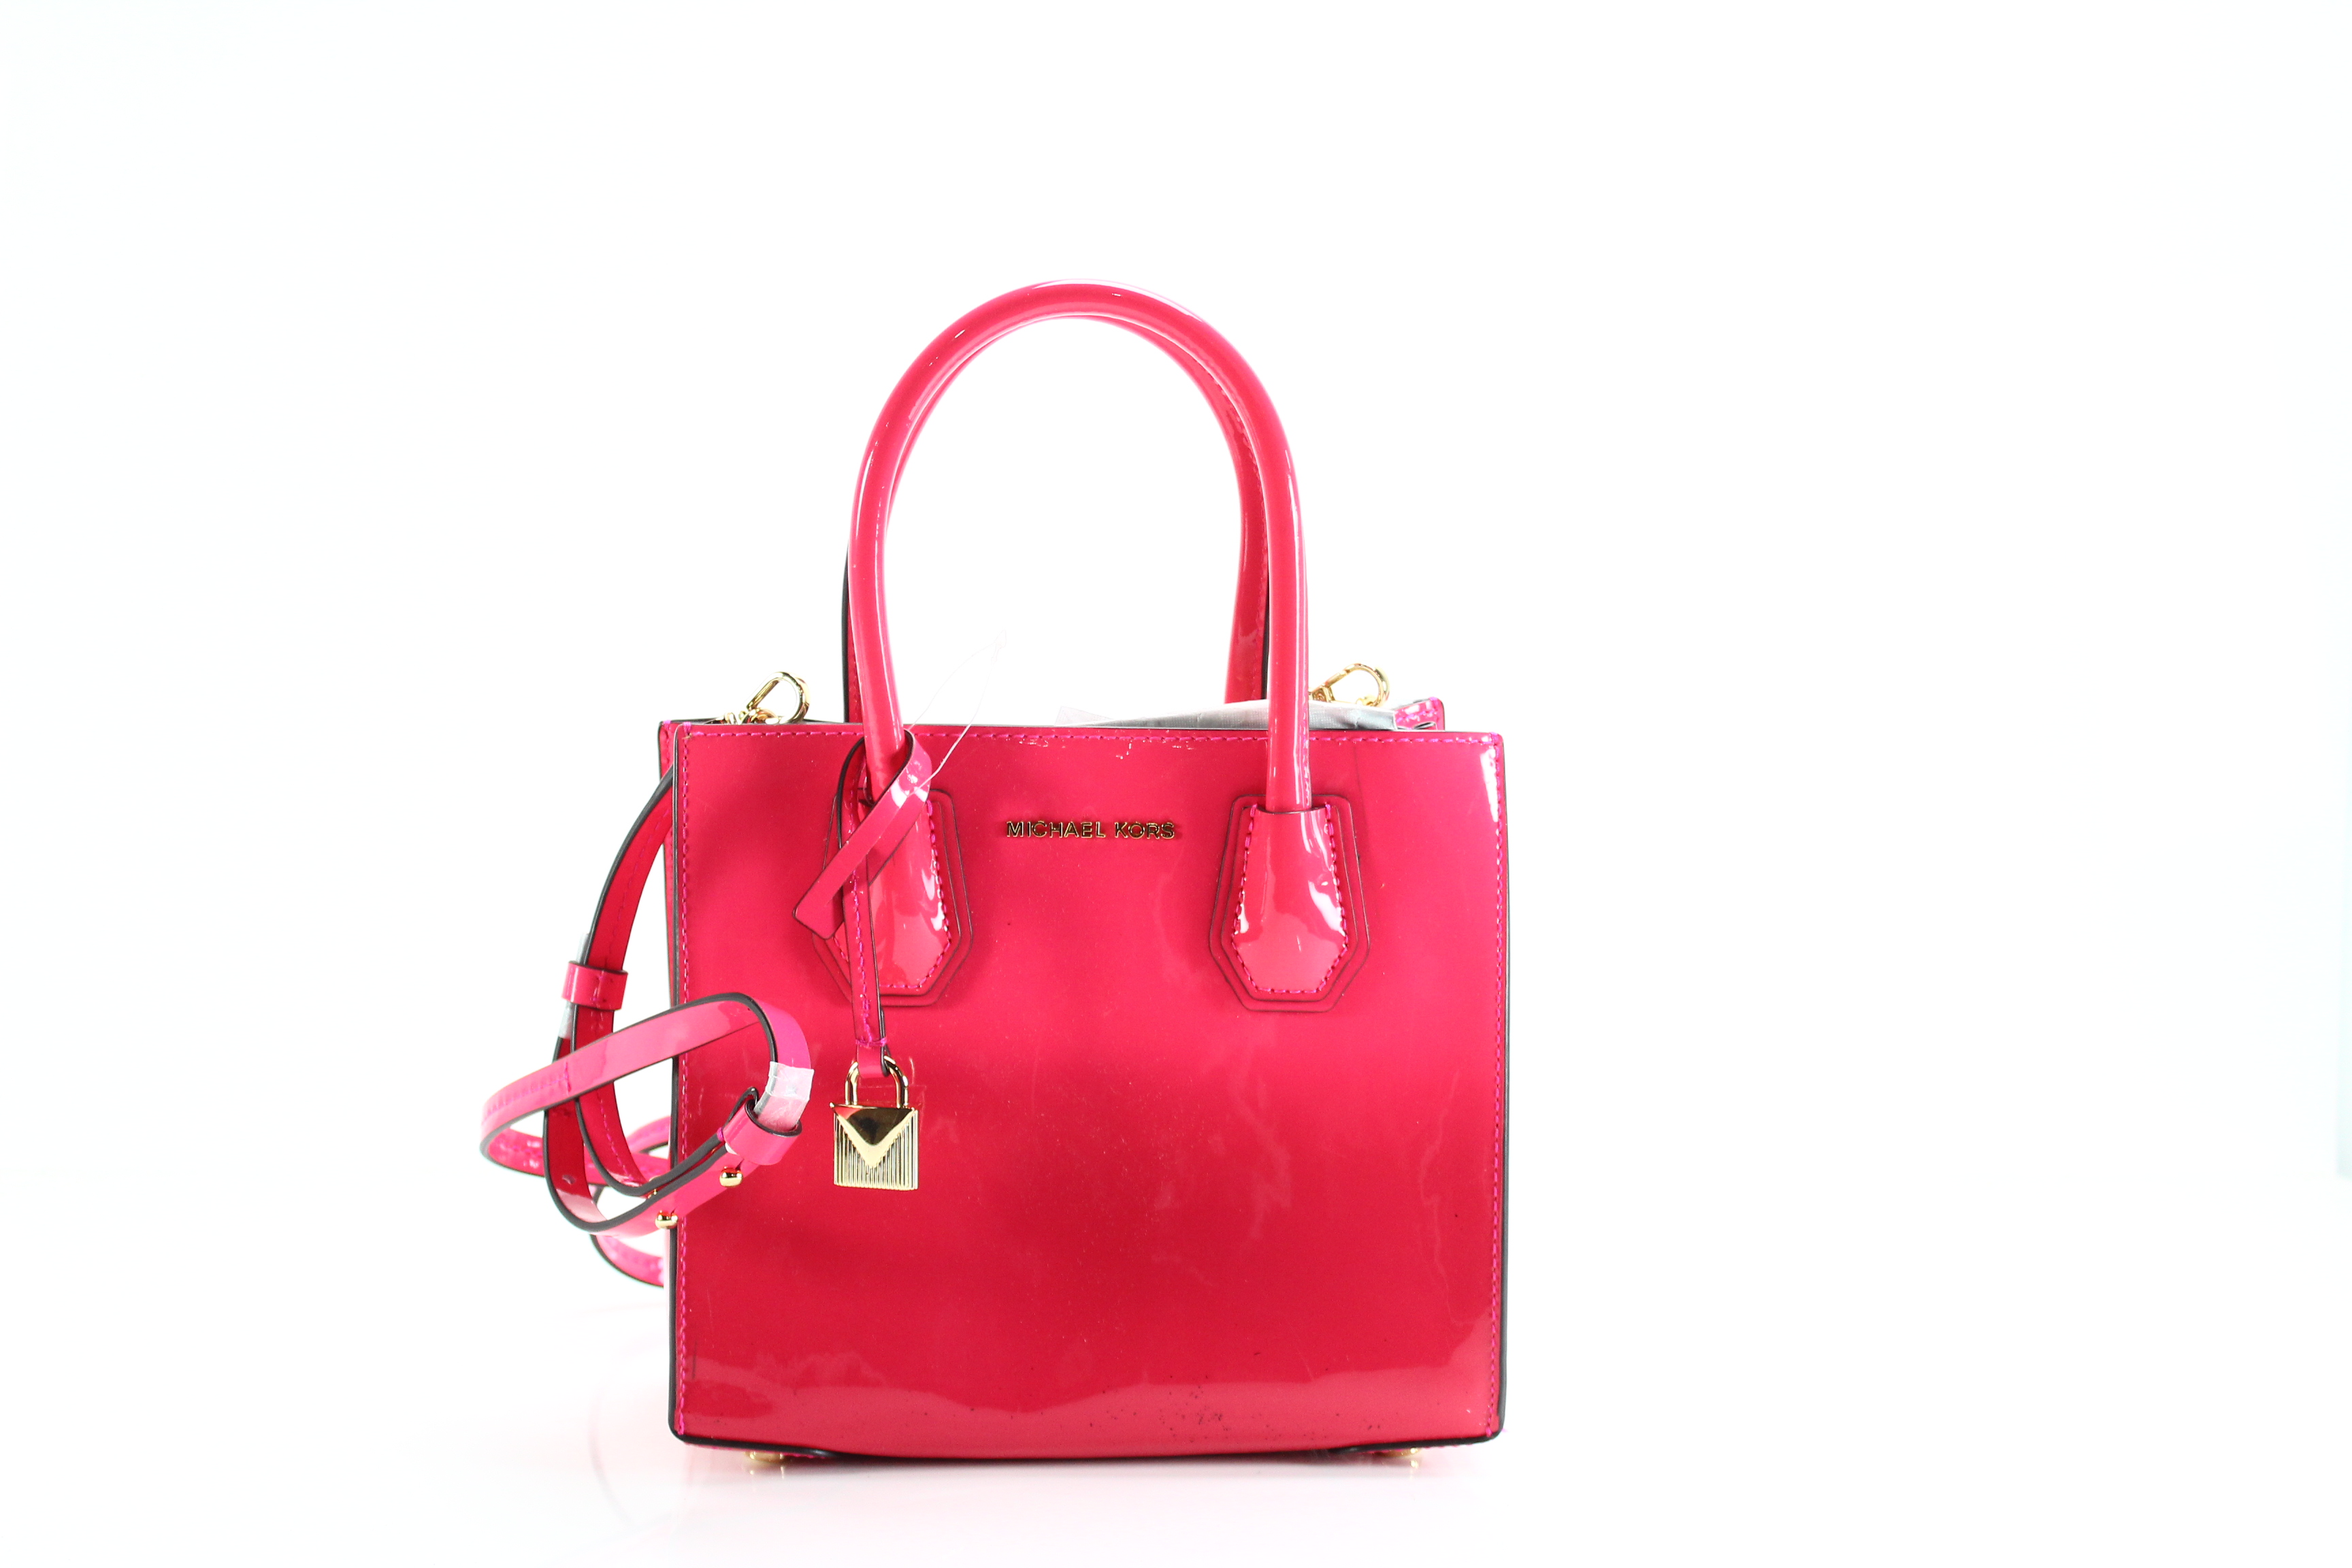 1cf47b95c78a Details about Michael Kors NEW Ultra Pink Gold Mercer Mini Tote Patent  Leather Bag  268-  009